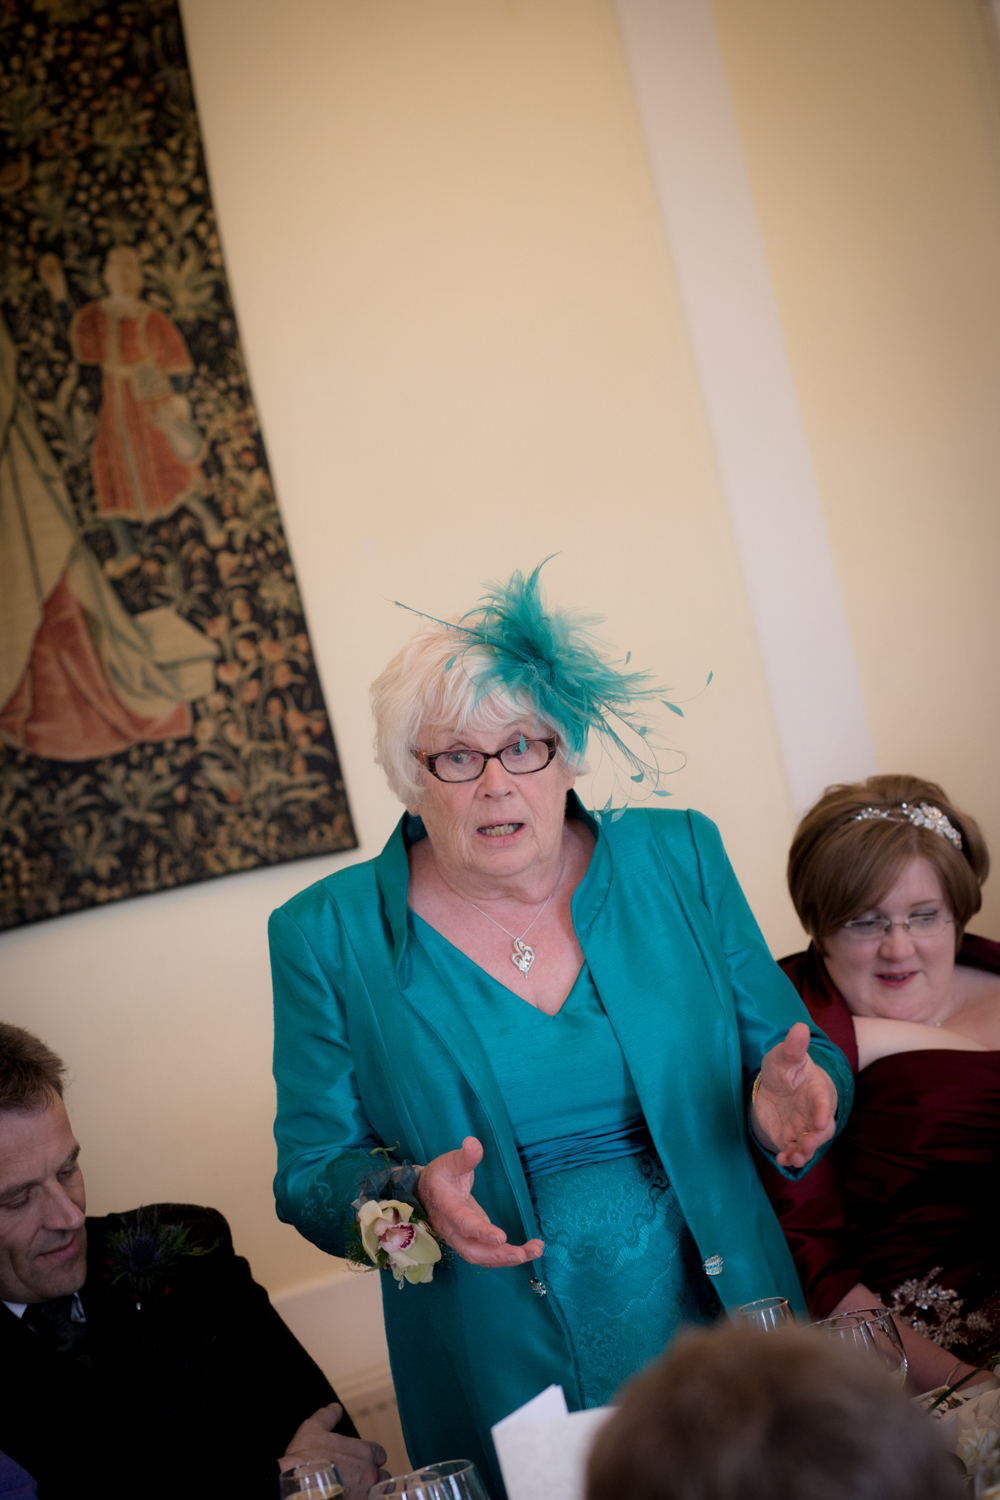 Clare and Charles wedding day blog-78.jpg